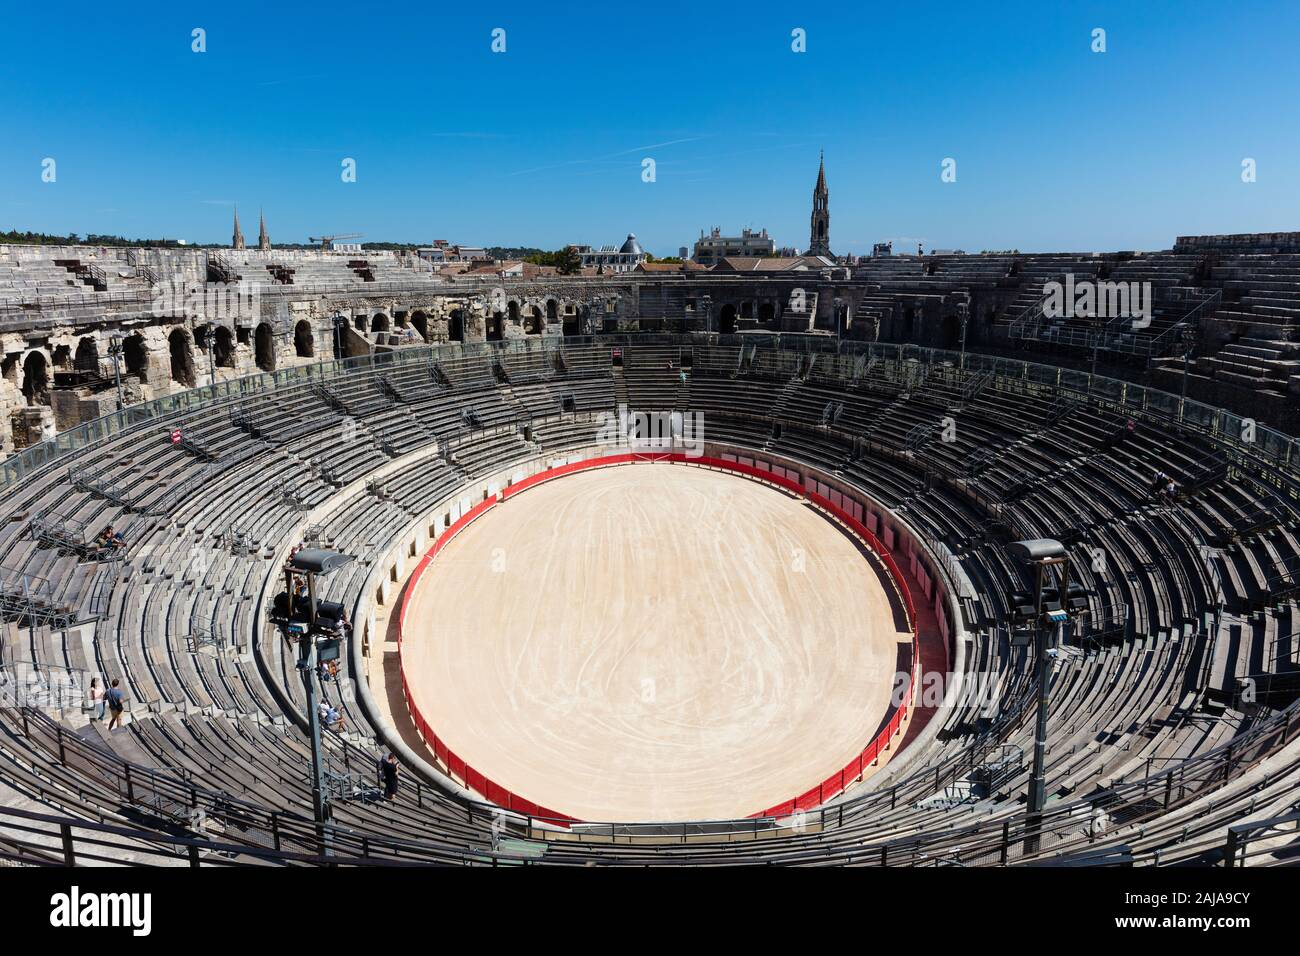 Bull Fighting Arena Nimes Roman Amphitheater France Stock Photo Alamy